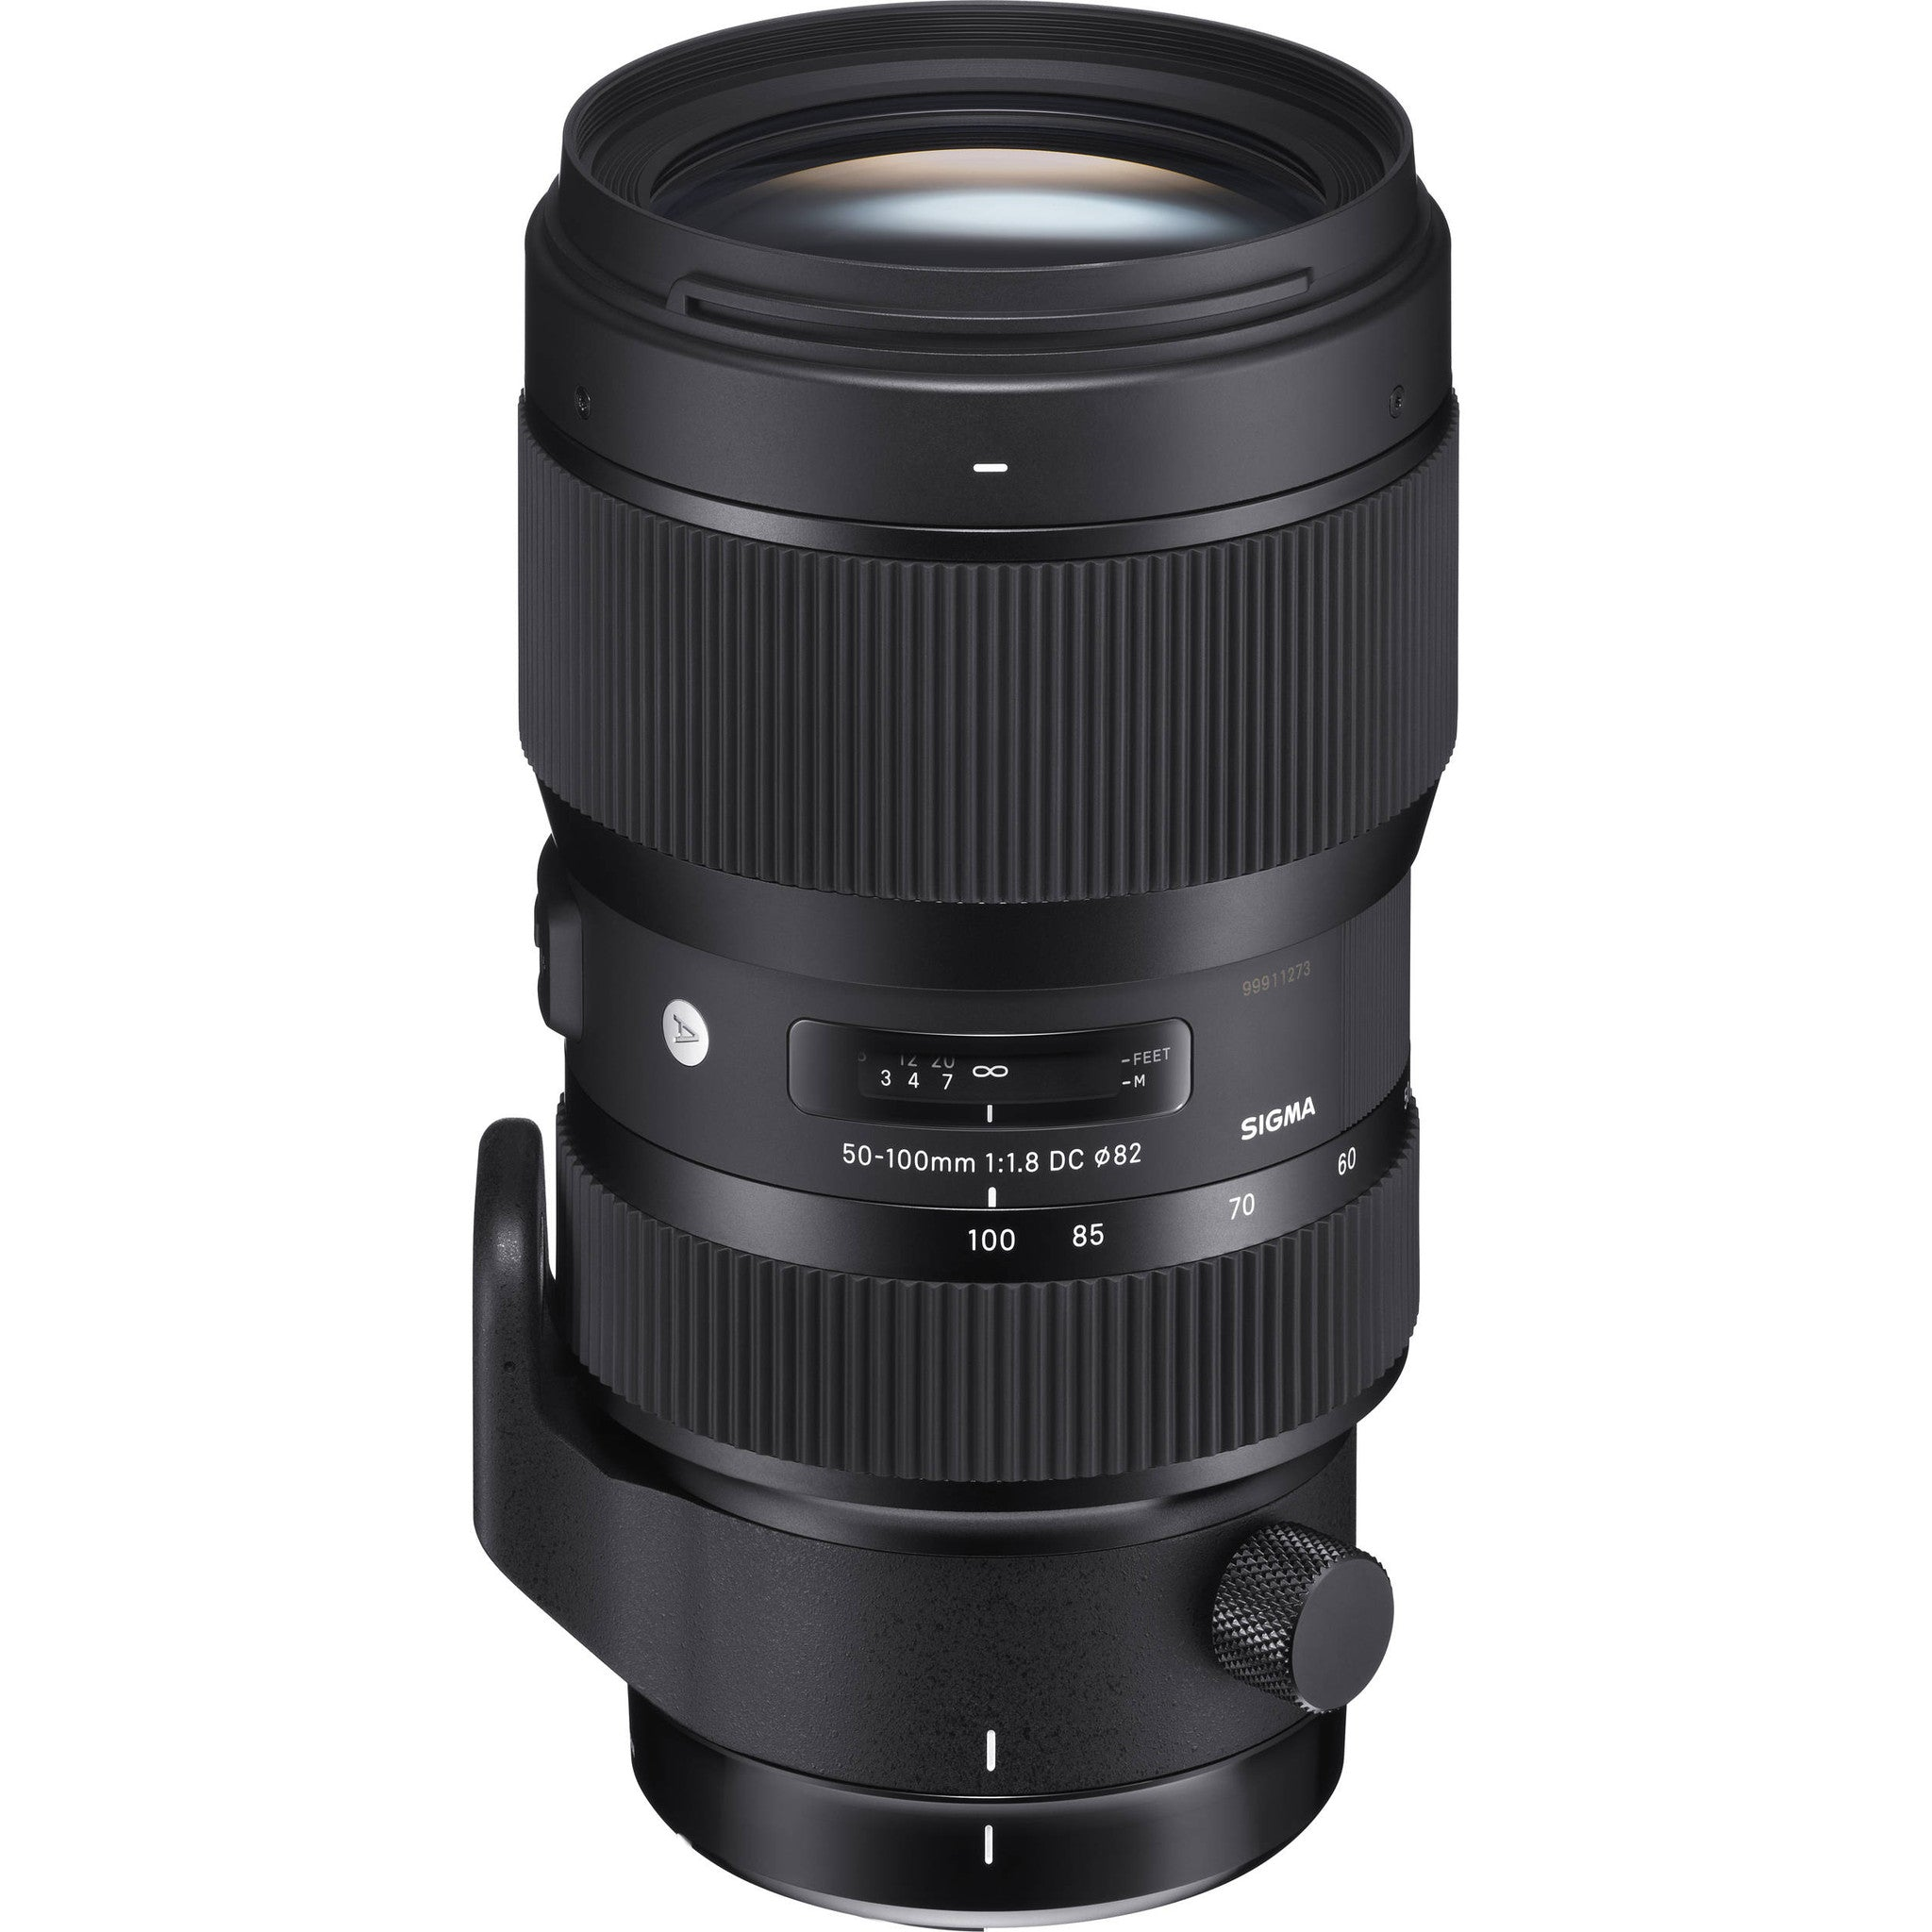 Sigma 50-100mm F1.8 Art DC HSM (Nikon) - Photo-Video - Sigma - Helix Camera